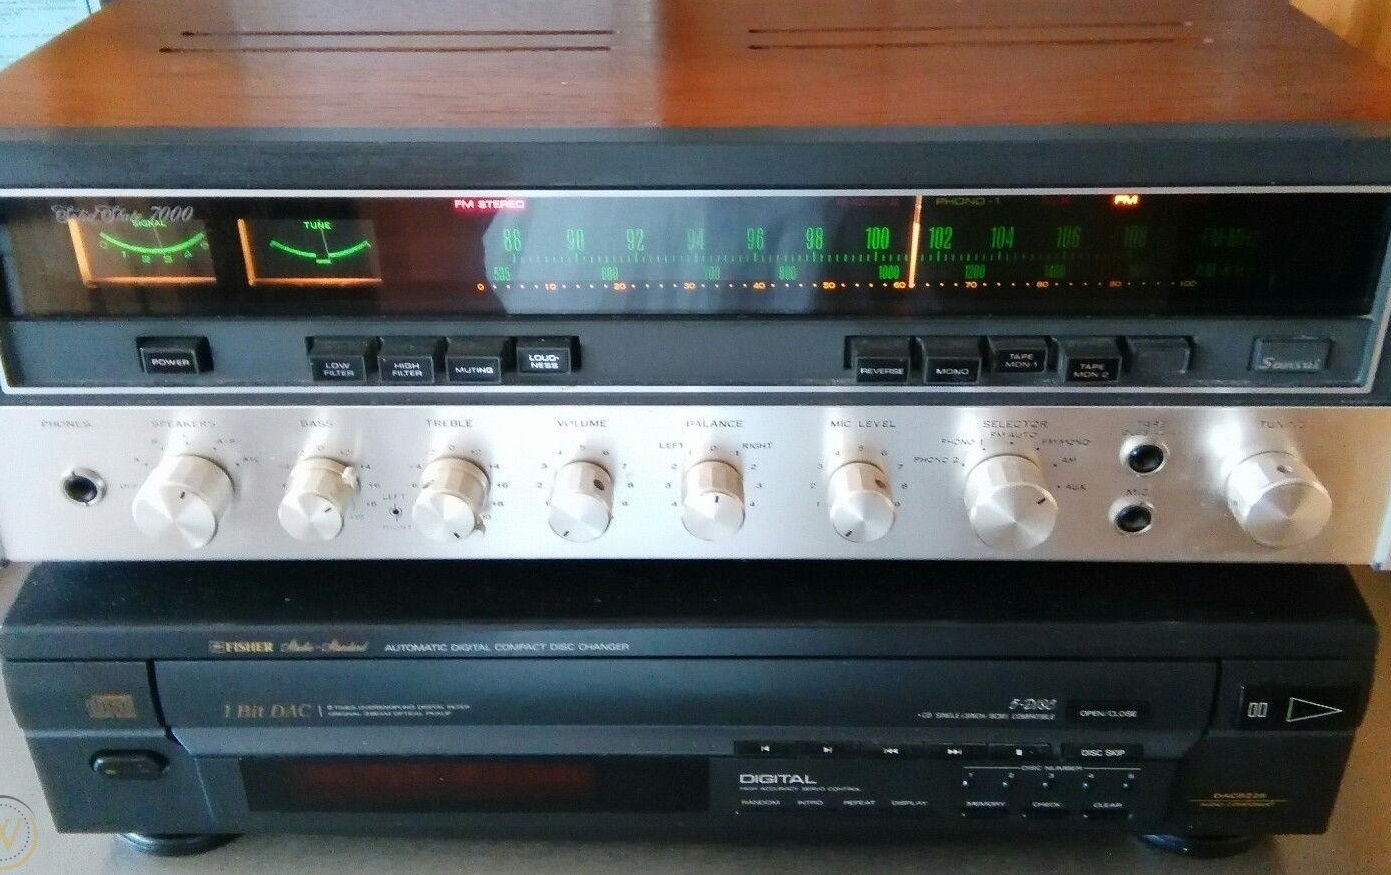 What are channels on a stereo receiver?